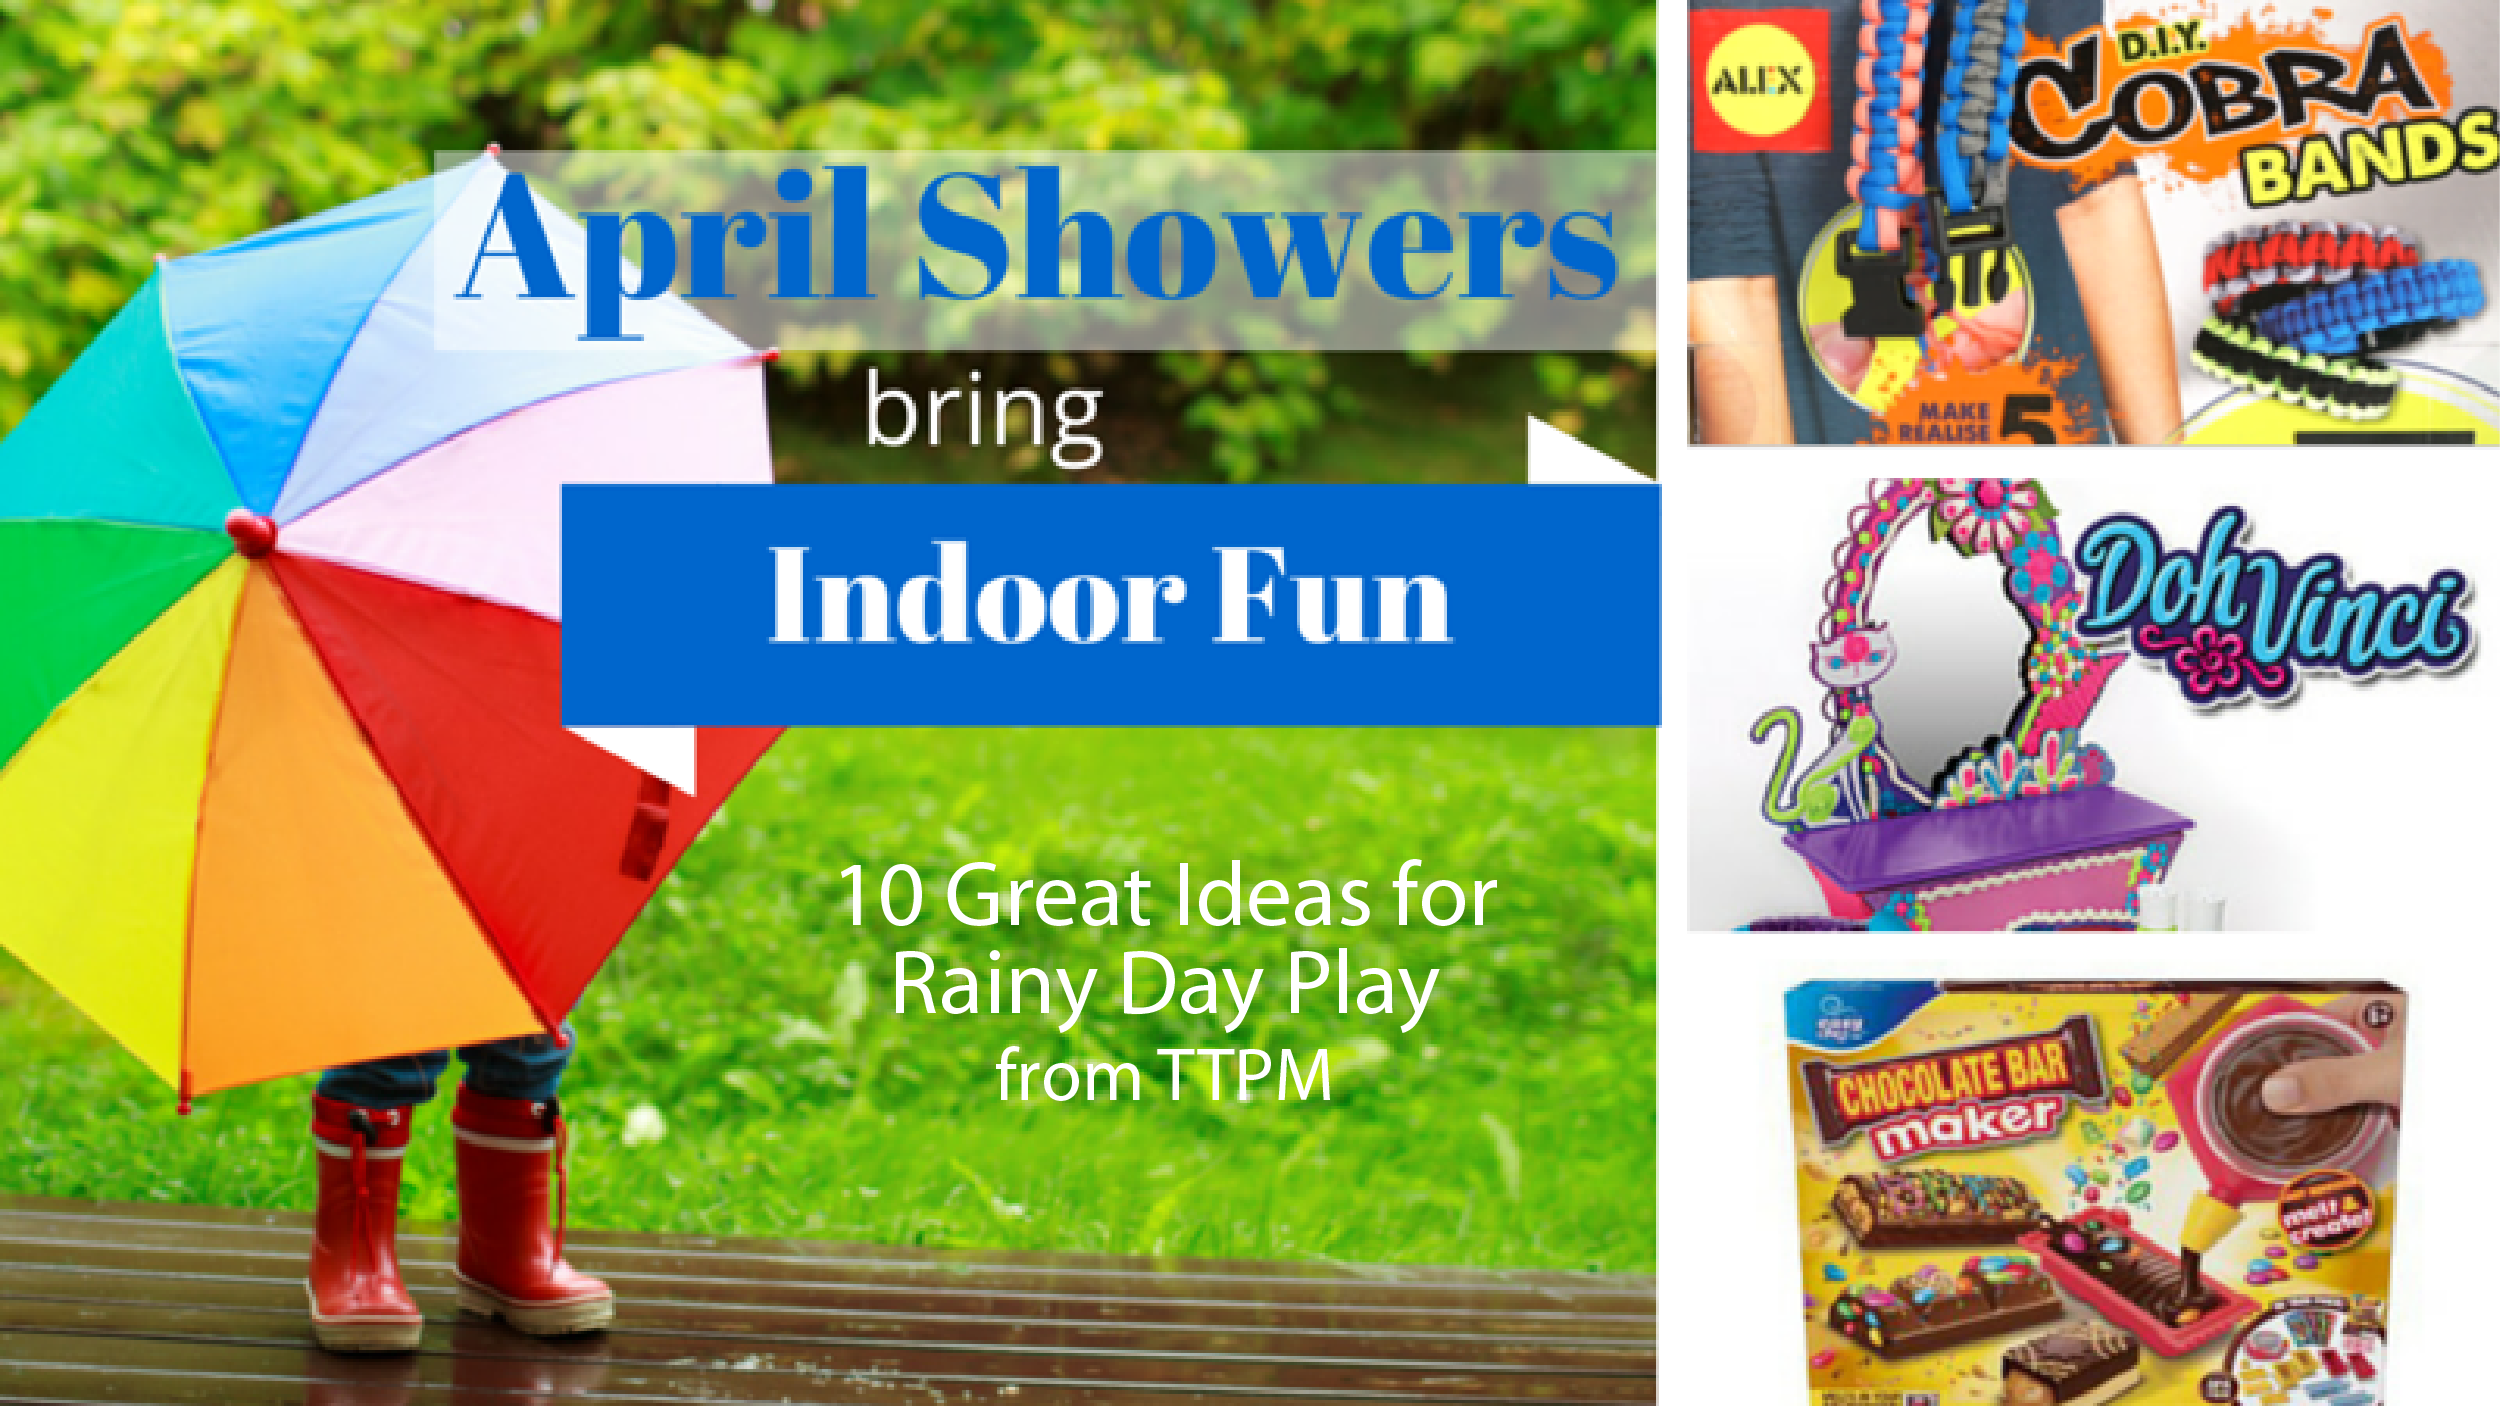 April Showers Bring Indoor Fun